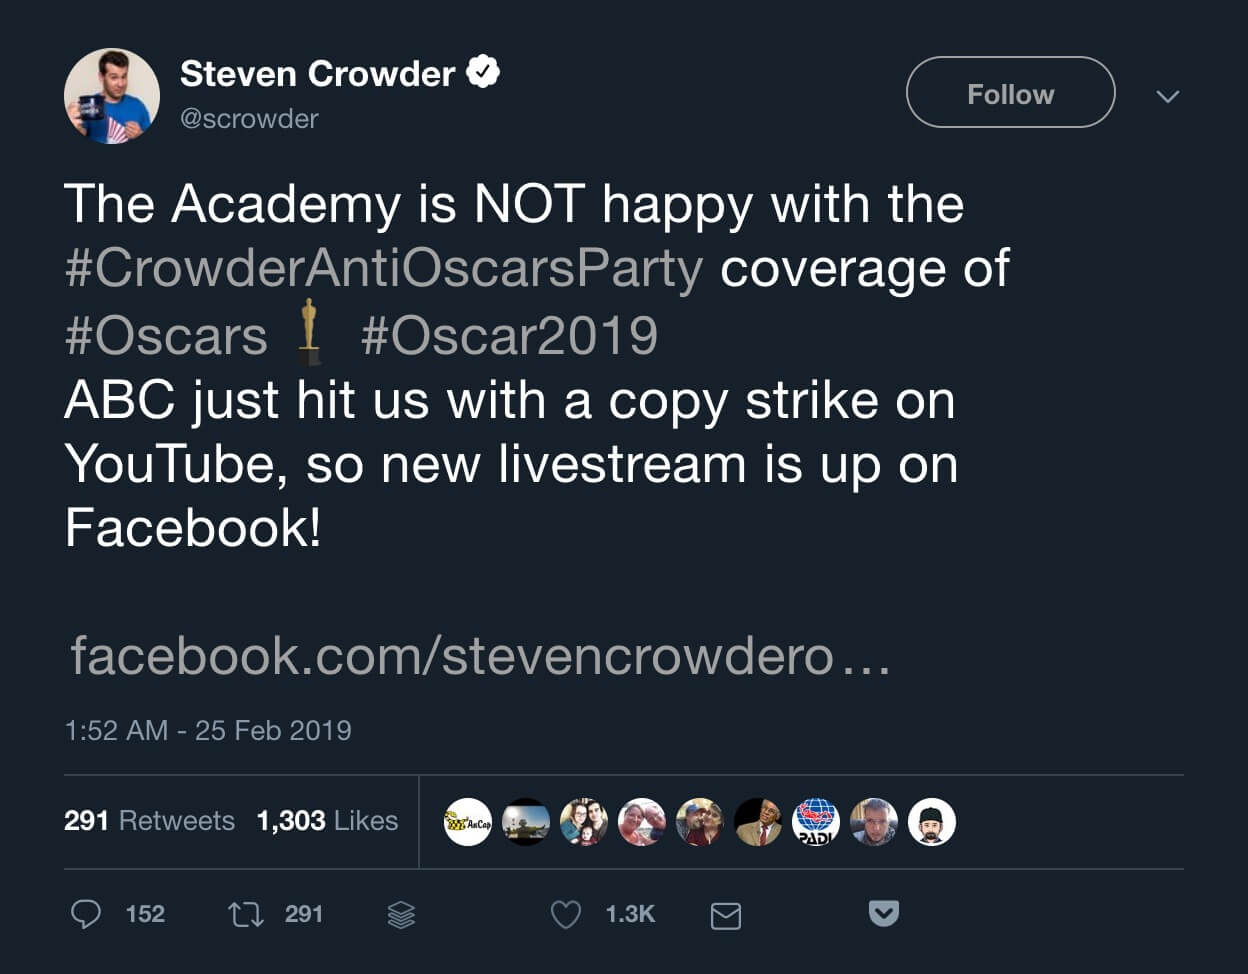 Steven Crowder's tweet announcing the Anti-Oscars Party stream being back up on Facebook.